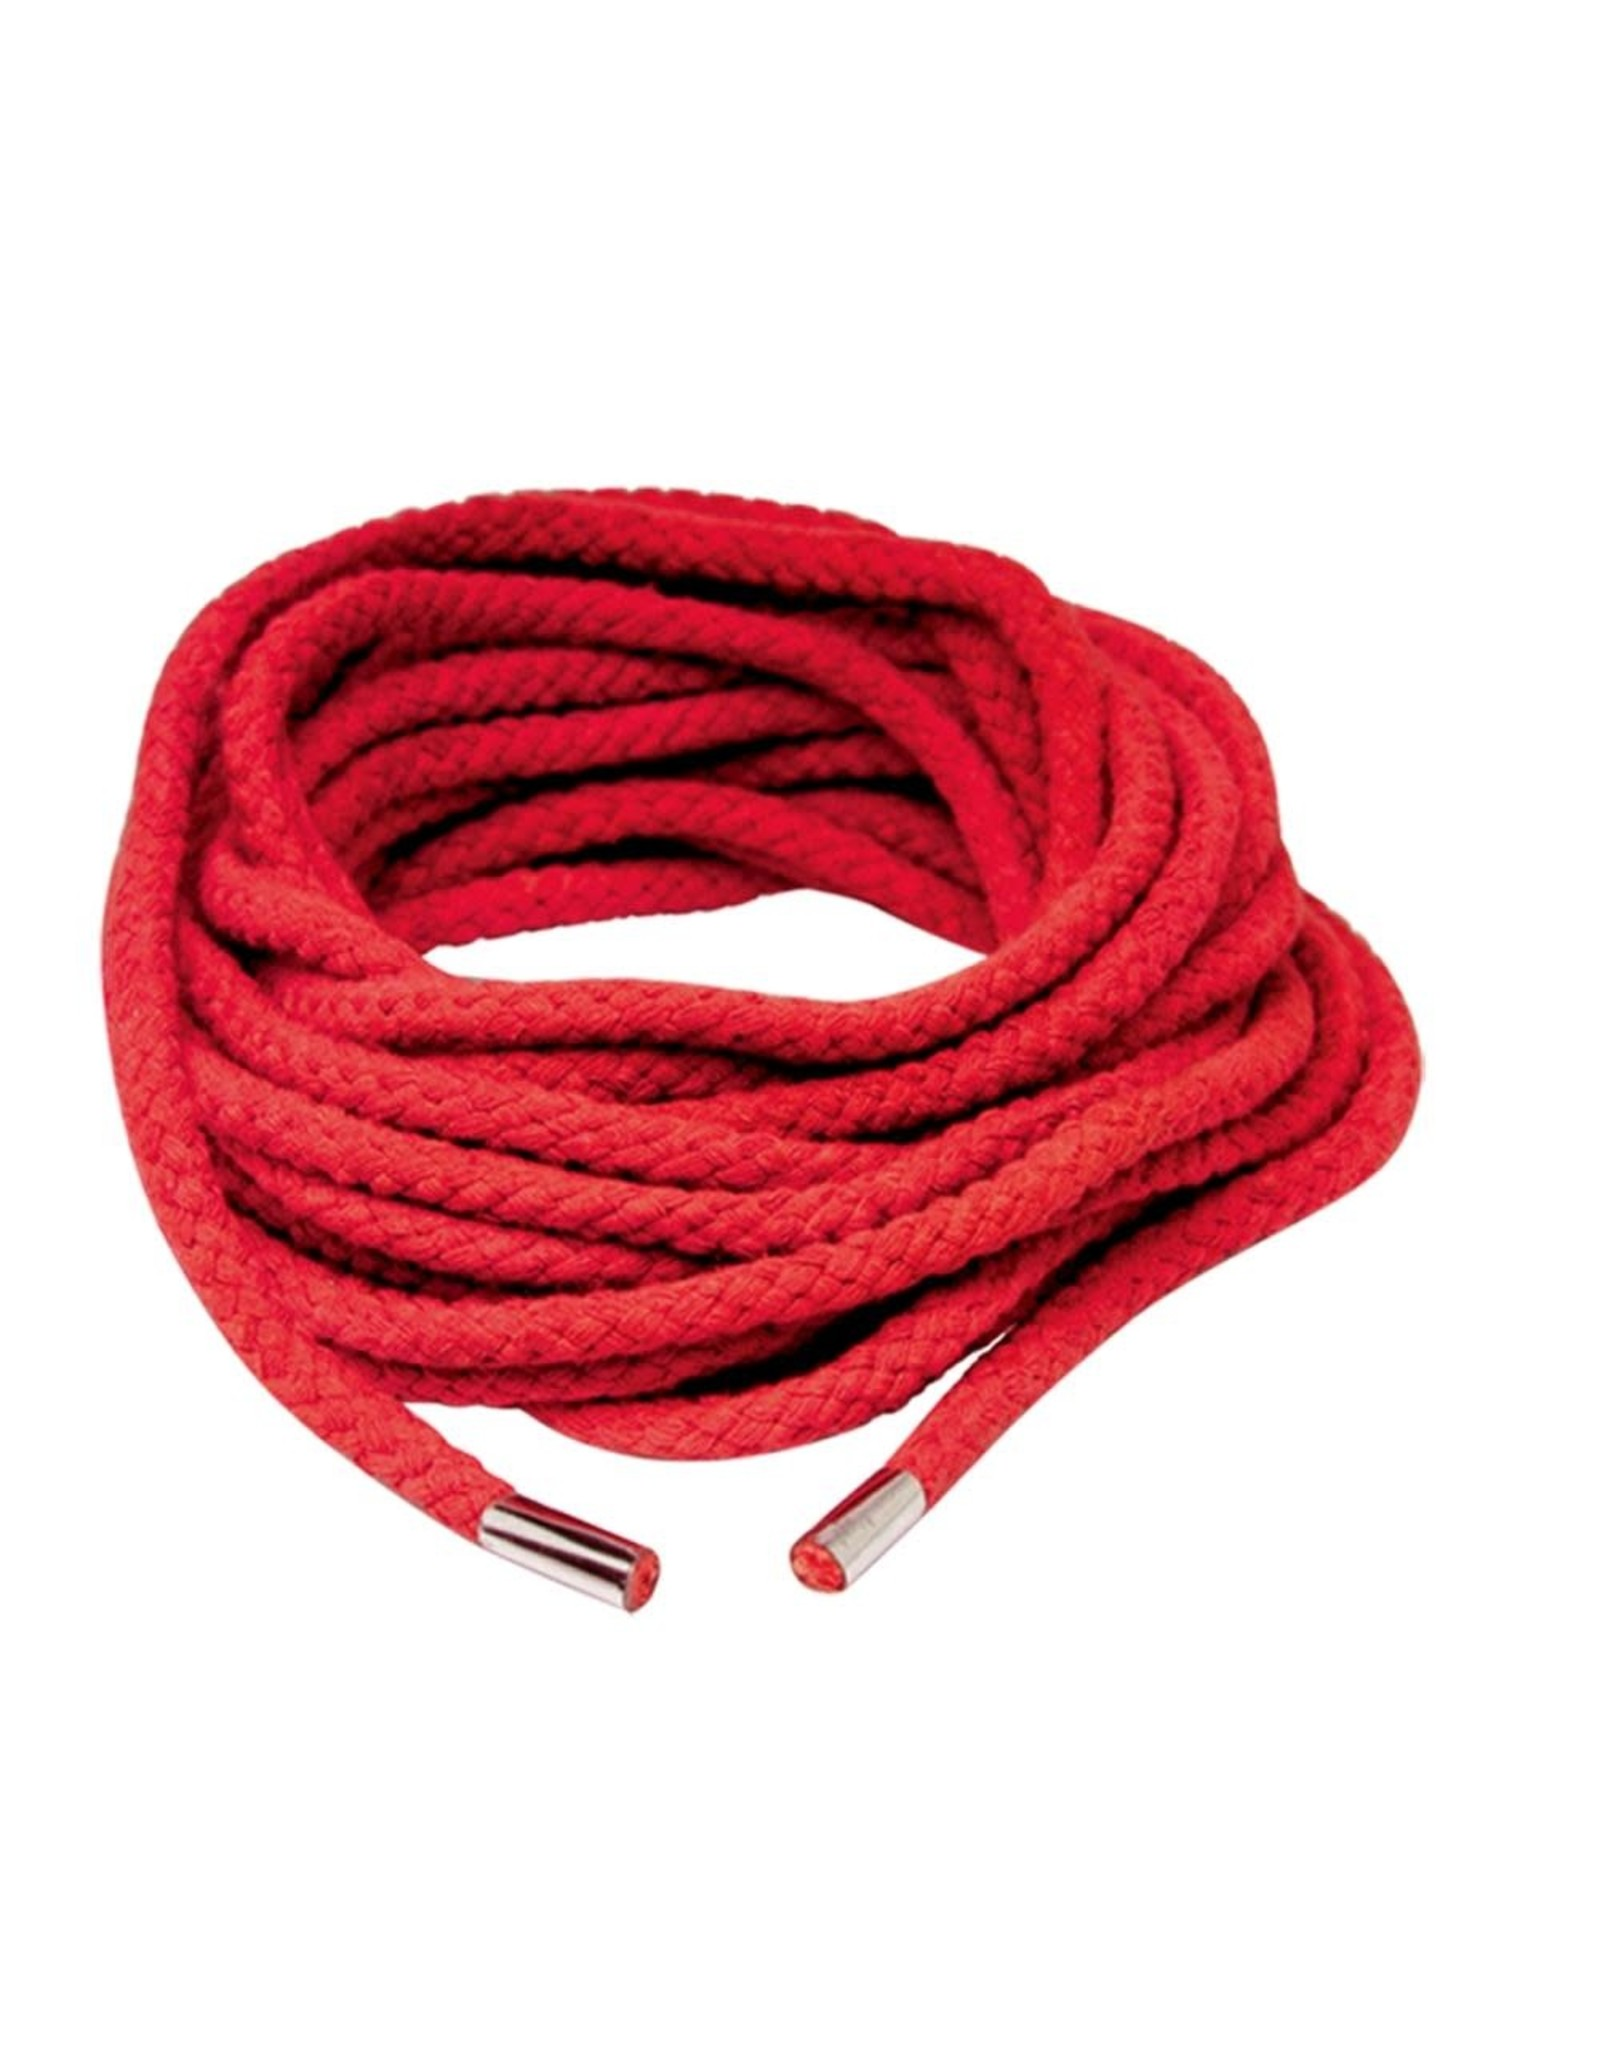 FETISH FANTASY PIPEDREAM - FETISH FANTASY - JAPANESE SILK ROPE - RED